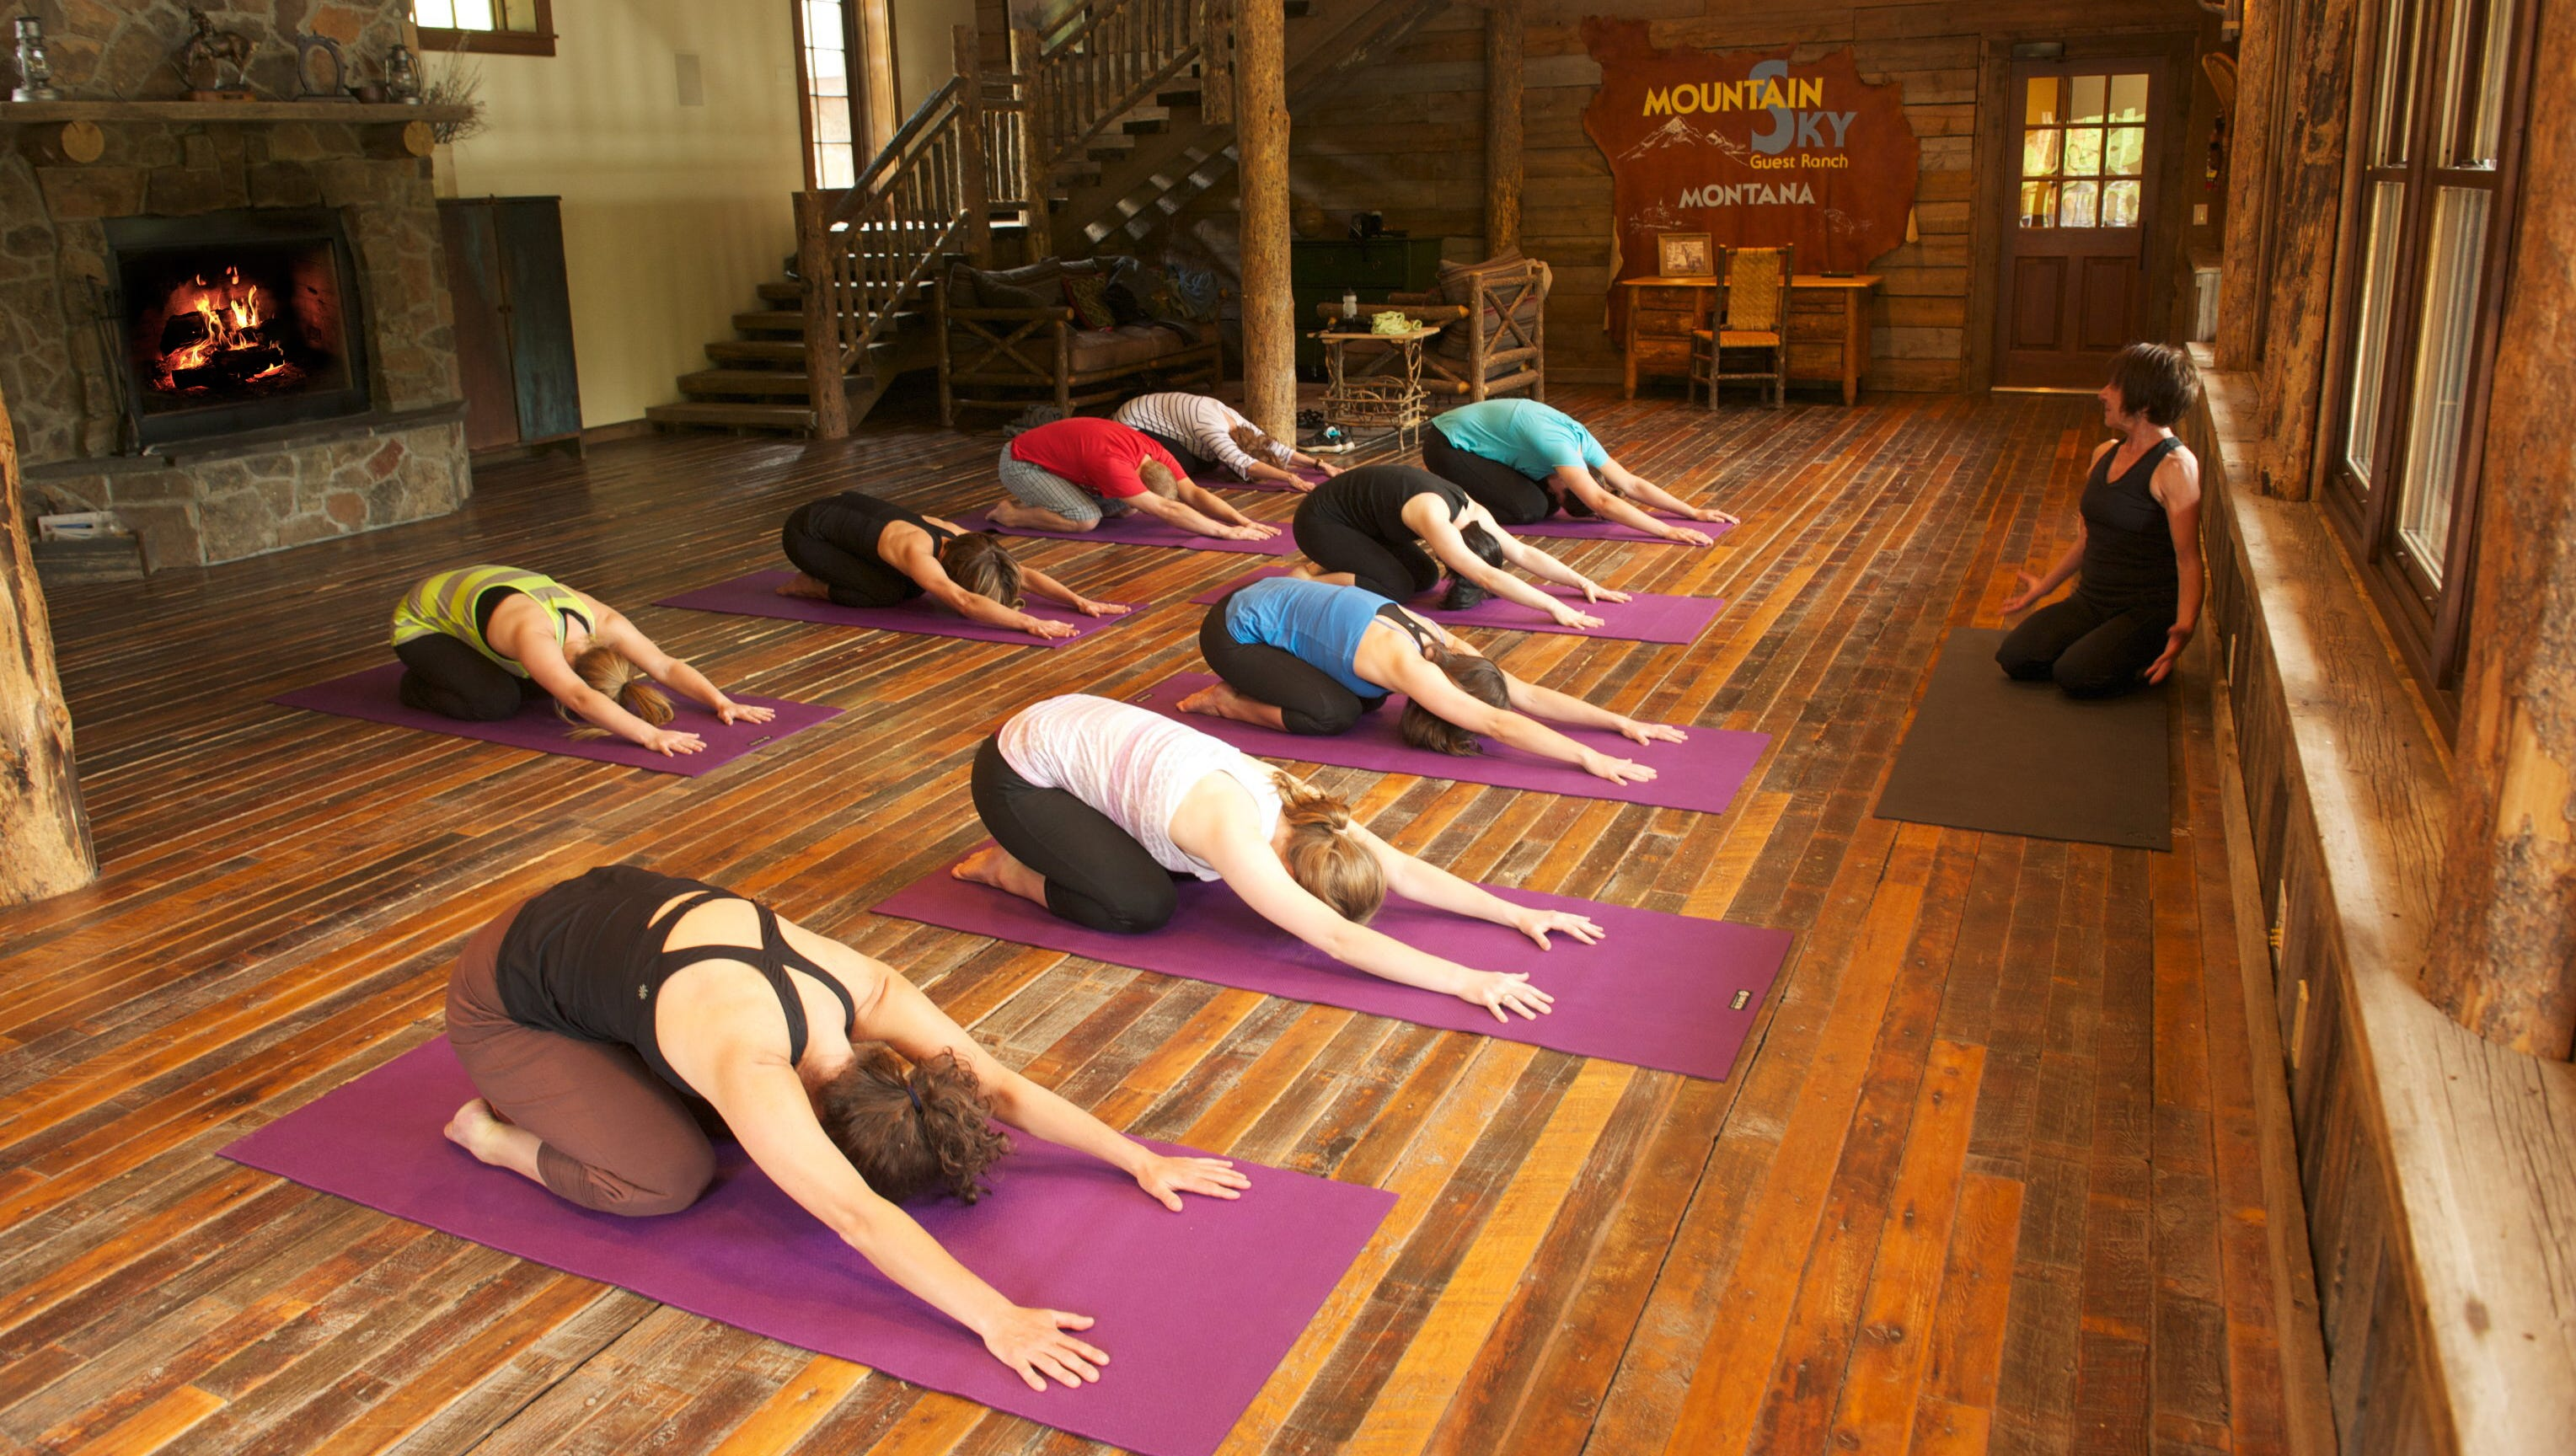 Mountain Sky Guest Ranch also offers yoga classes, a spa, golf, hiking, fly-fishing, and a fitness center.